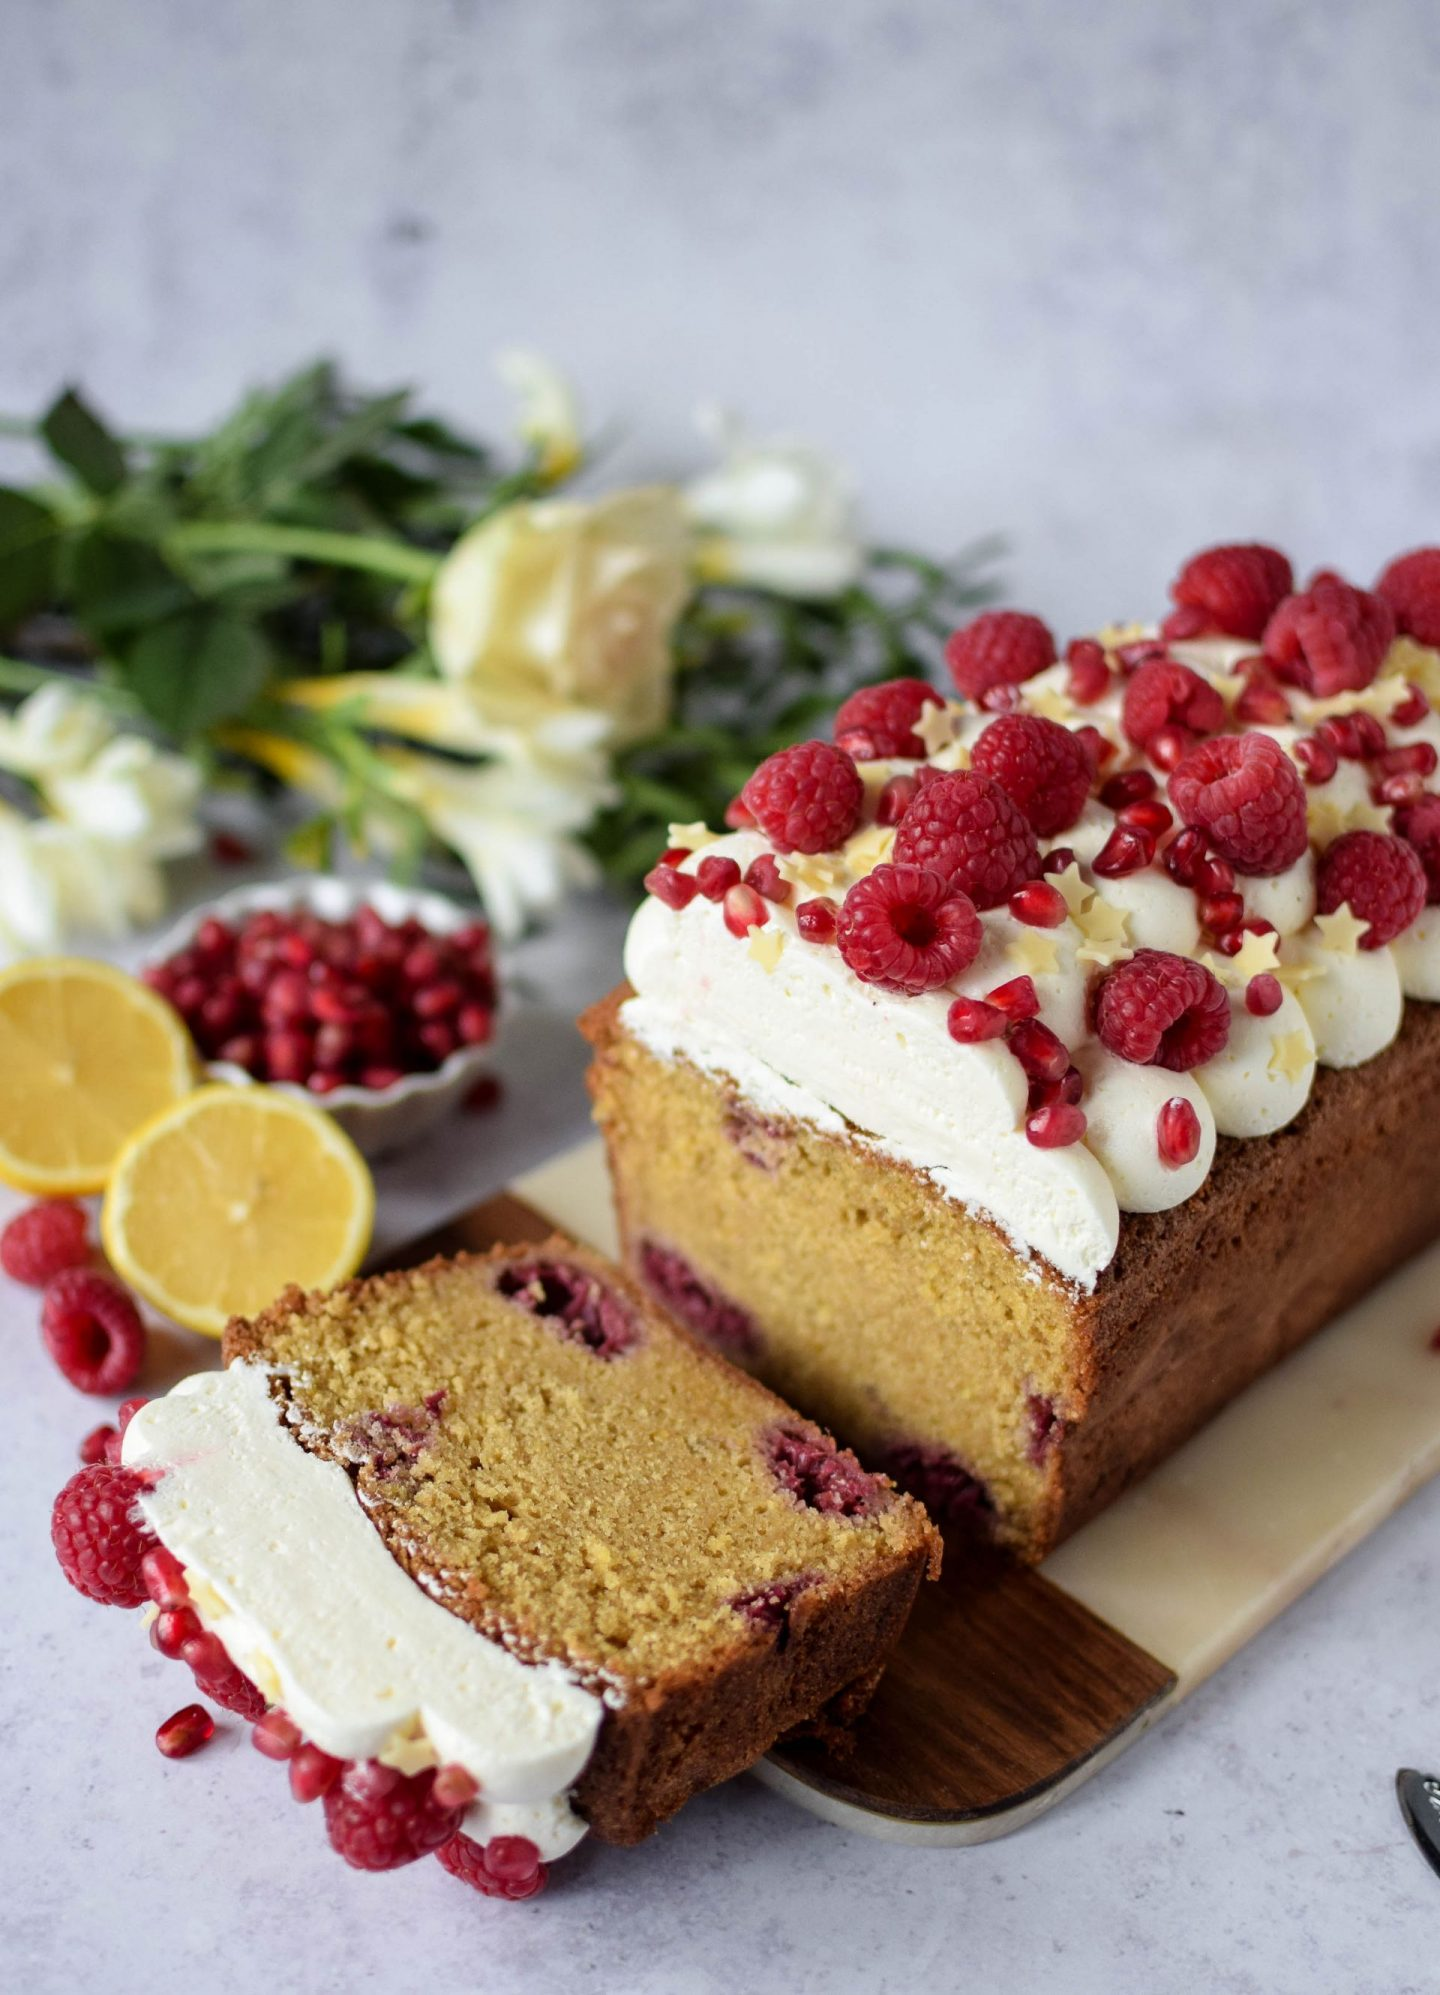 lemon and raspberry cake with one slice removed.